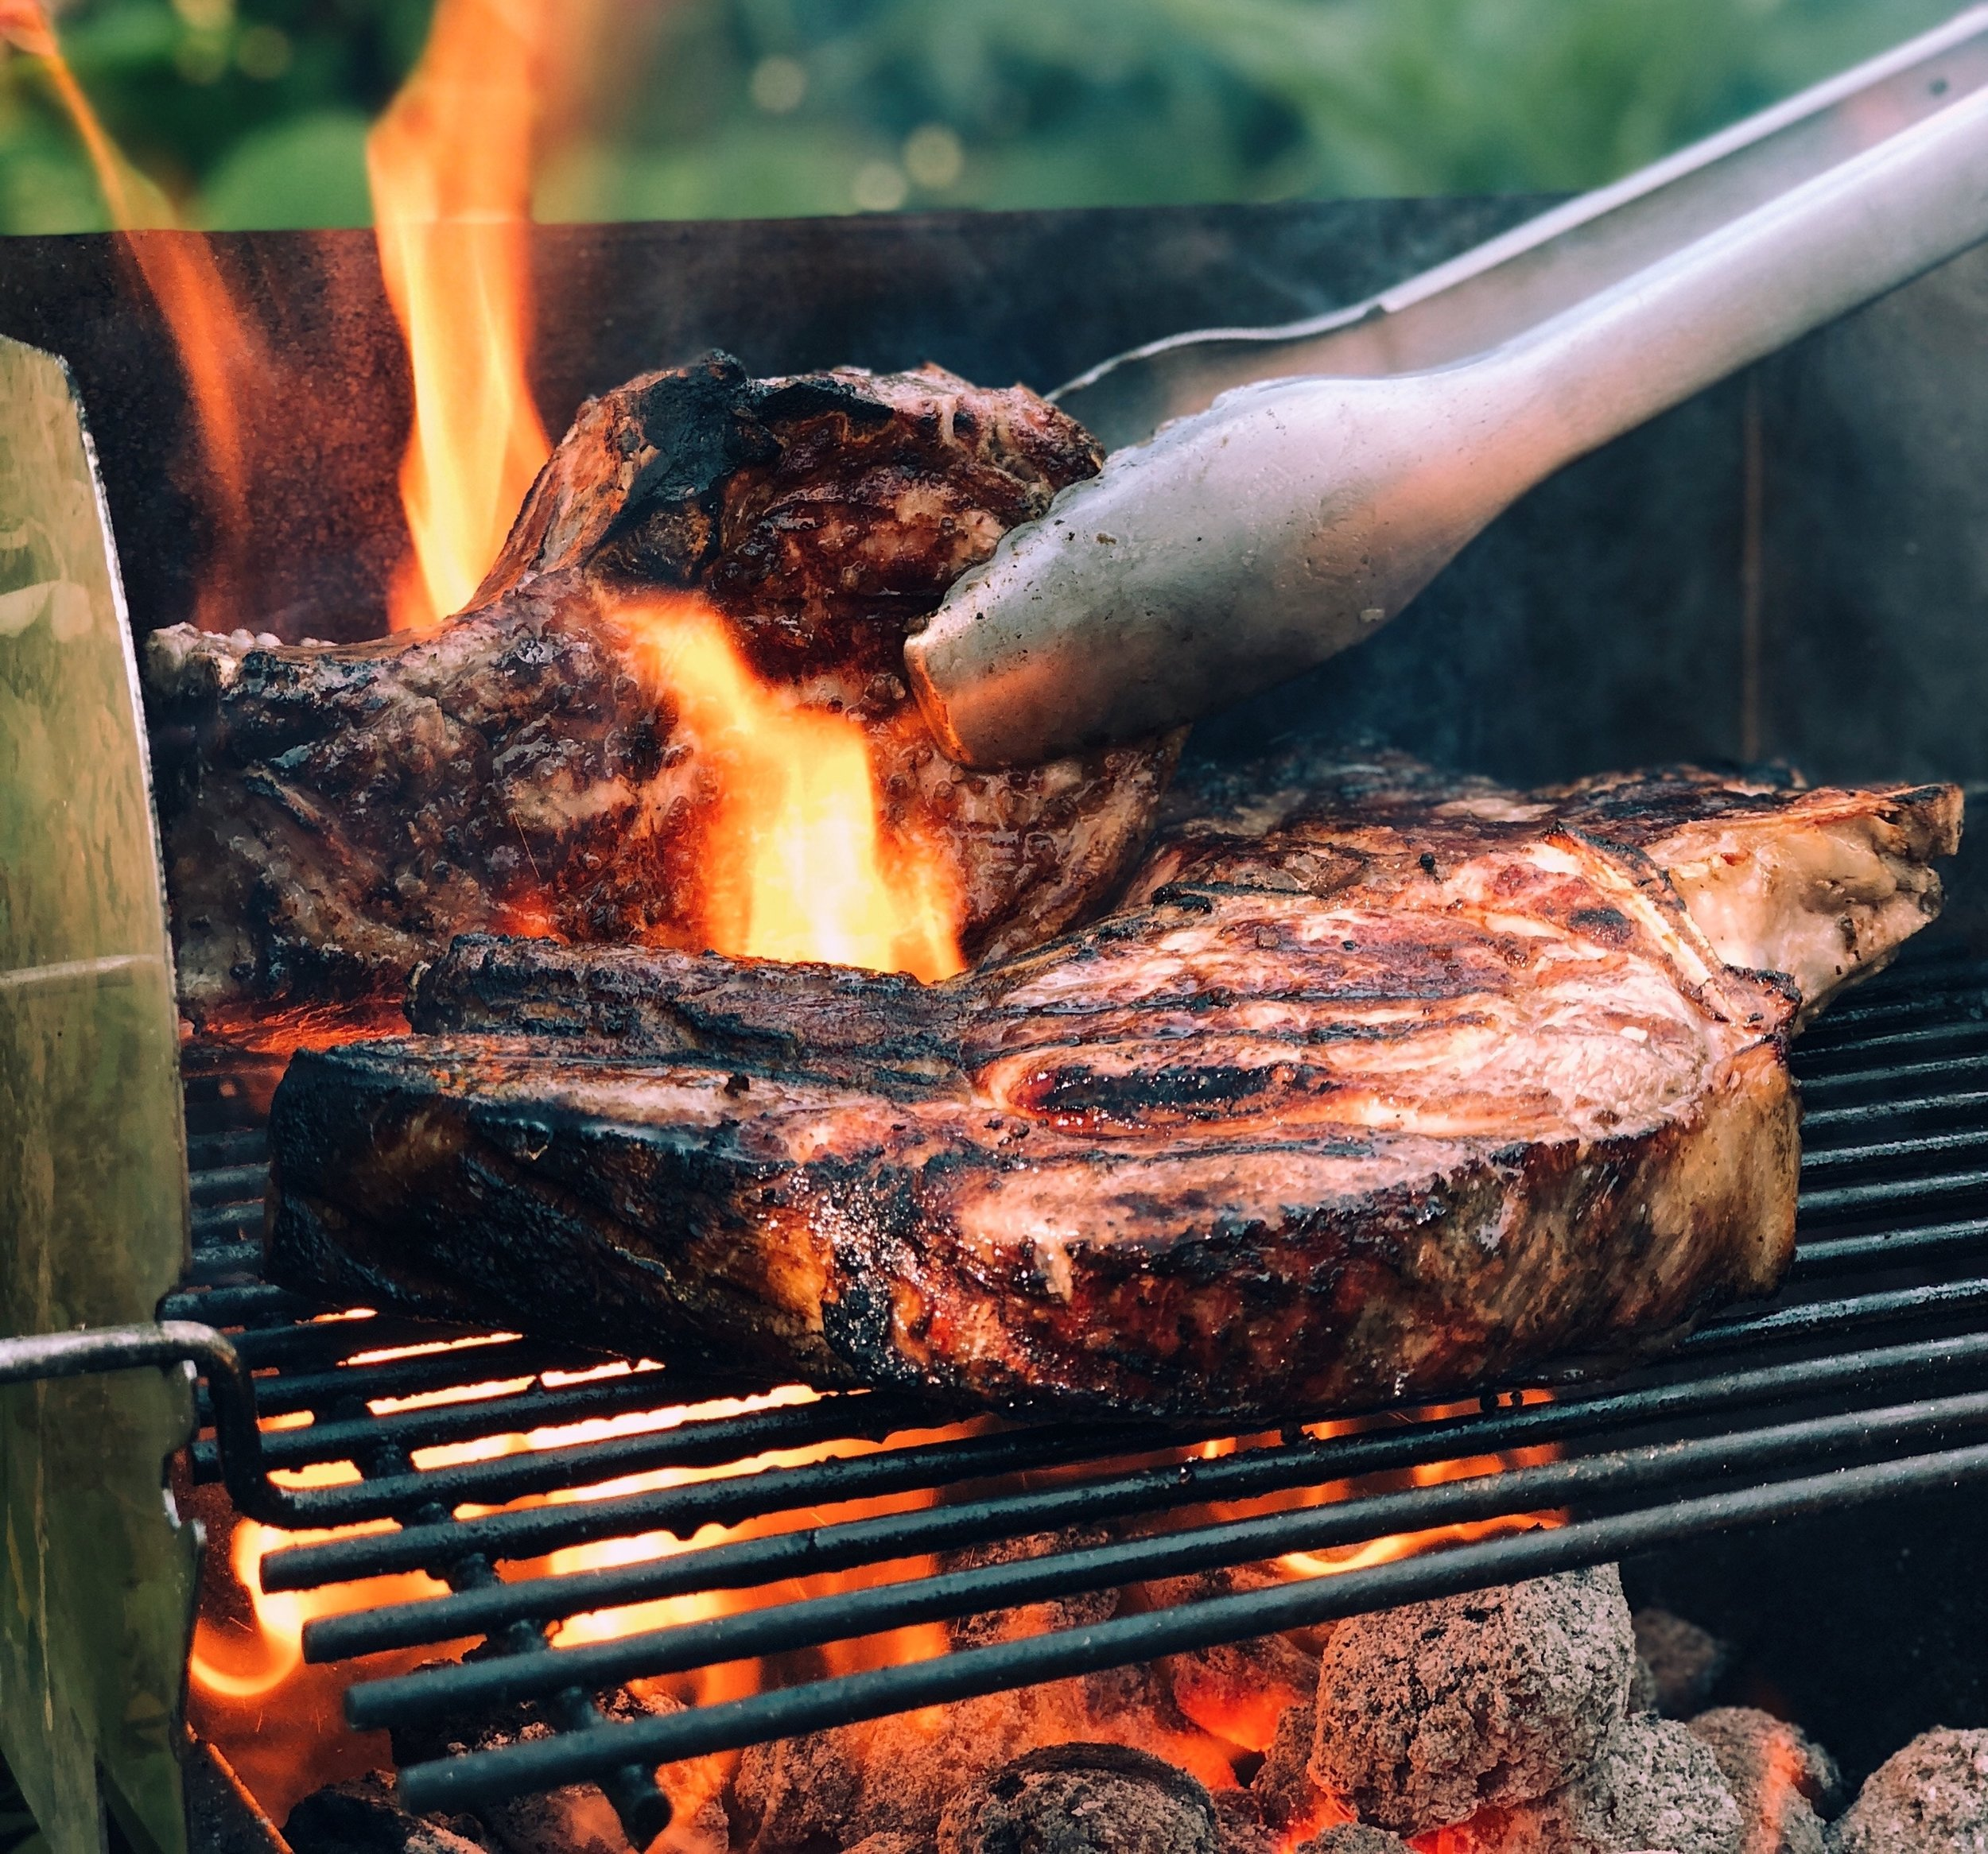 GEM Club - The GEM (grateful eaters of meat) club will convene once again on Saturday, November 18 for an eating event like no other. We will meet at the church at 9:30am and head to Mutt's BBQ in Greer, SC. See Mike Jensen for details. Ya'll come!